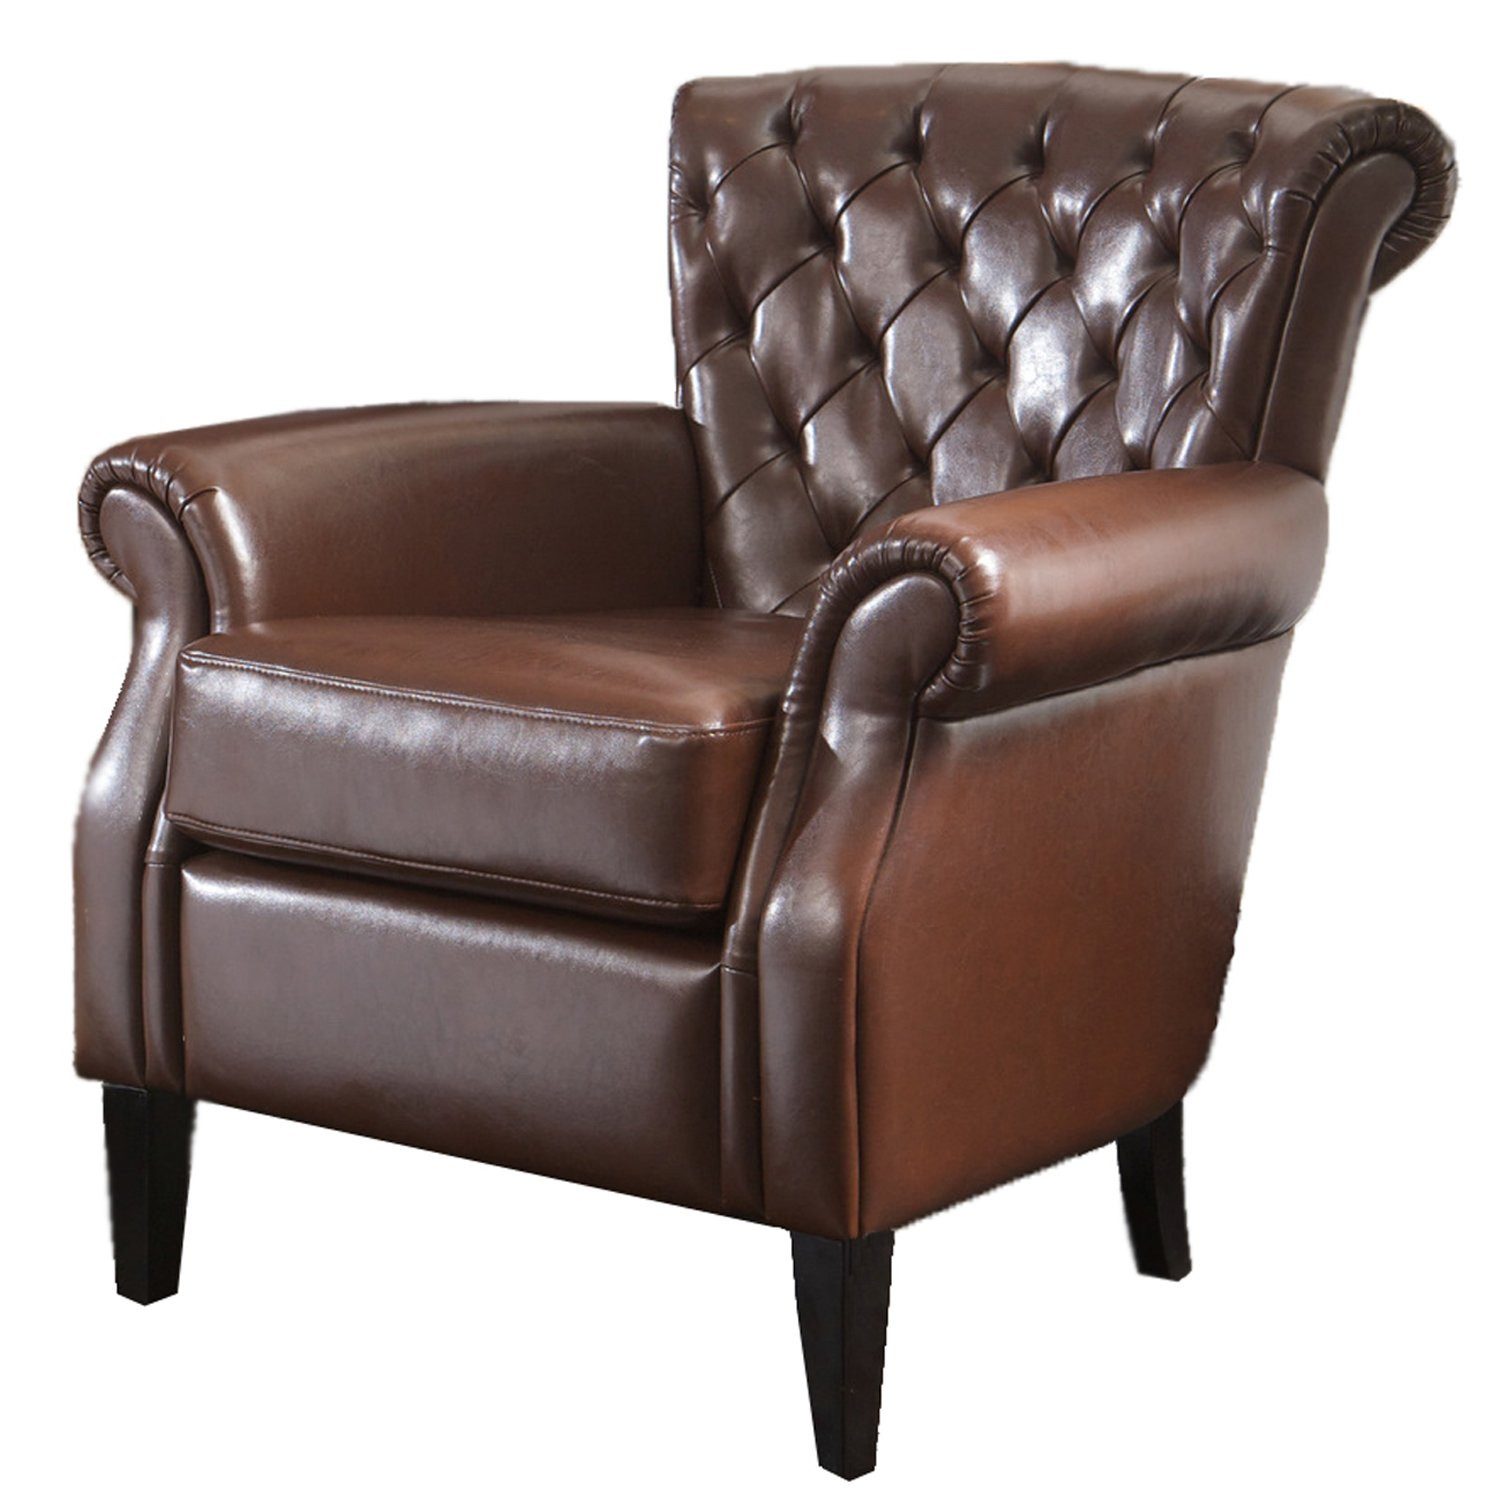 Amazon Best Selling Franklin Bonded Leather Club Chair Brown